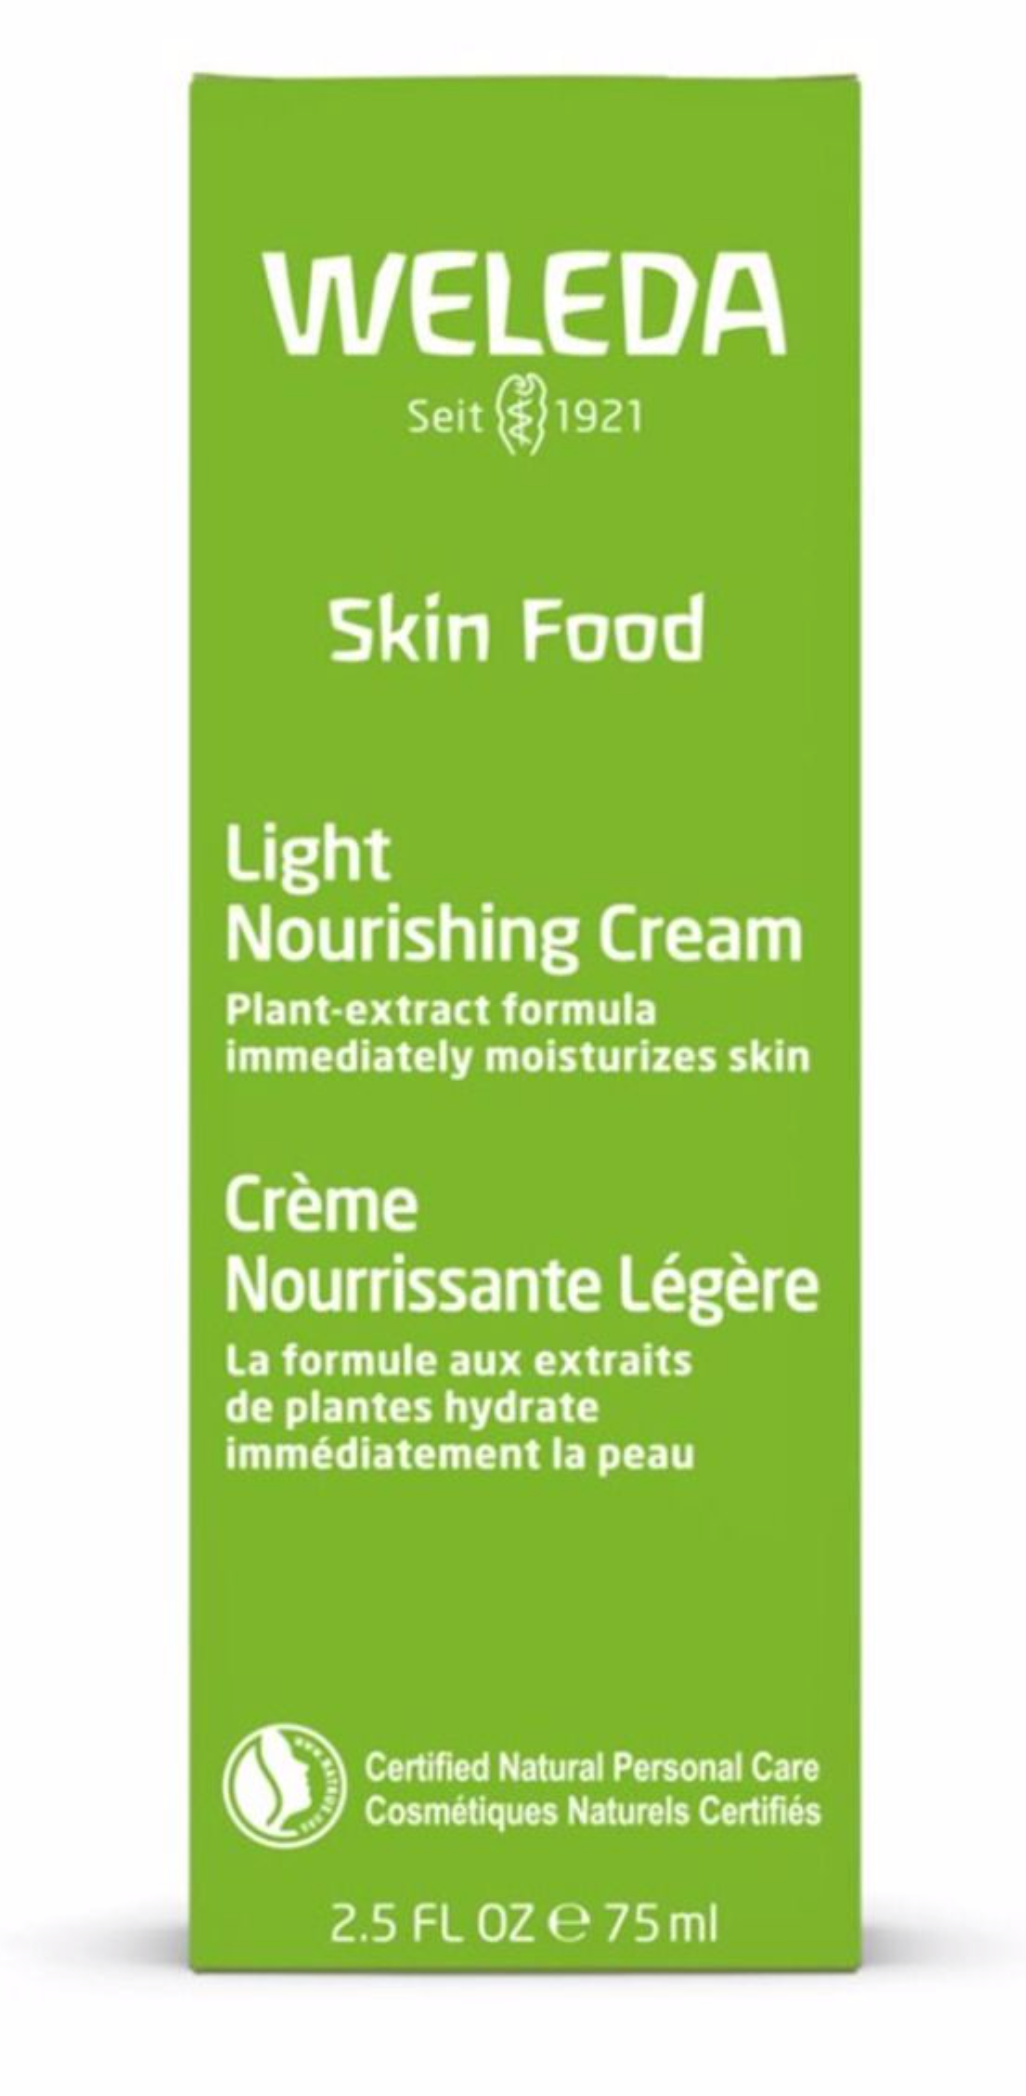 Shop Weleda Skin Food Light Nourishing Cream 2.5 fl.oz. at New London Pharmacy. Free shipping on all orders of $50.00.